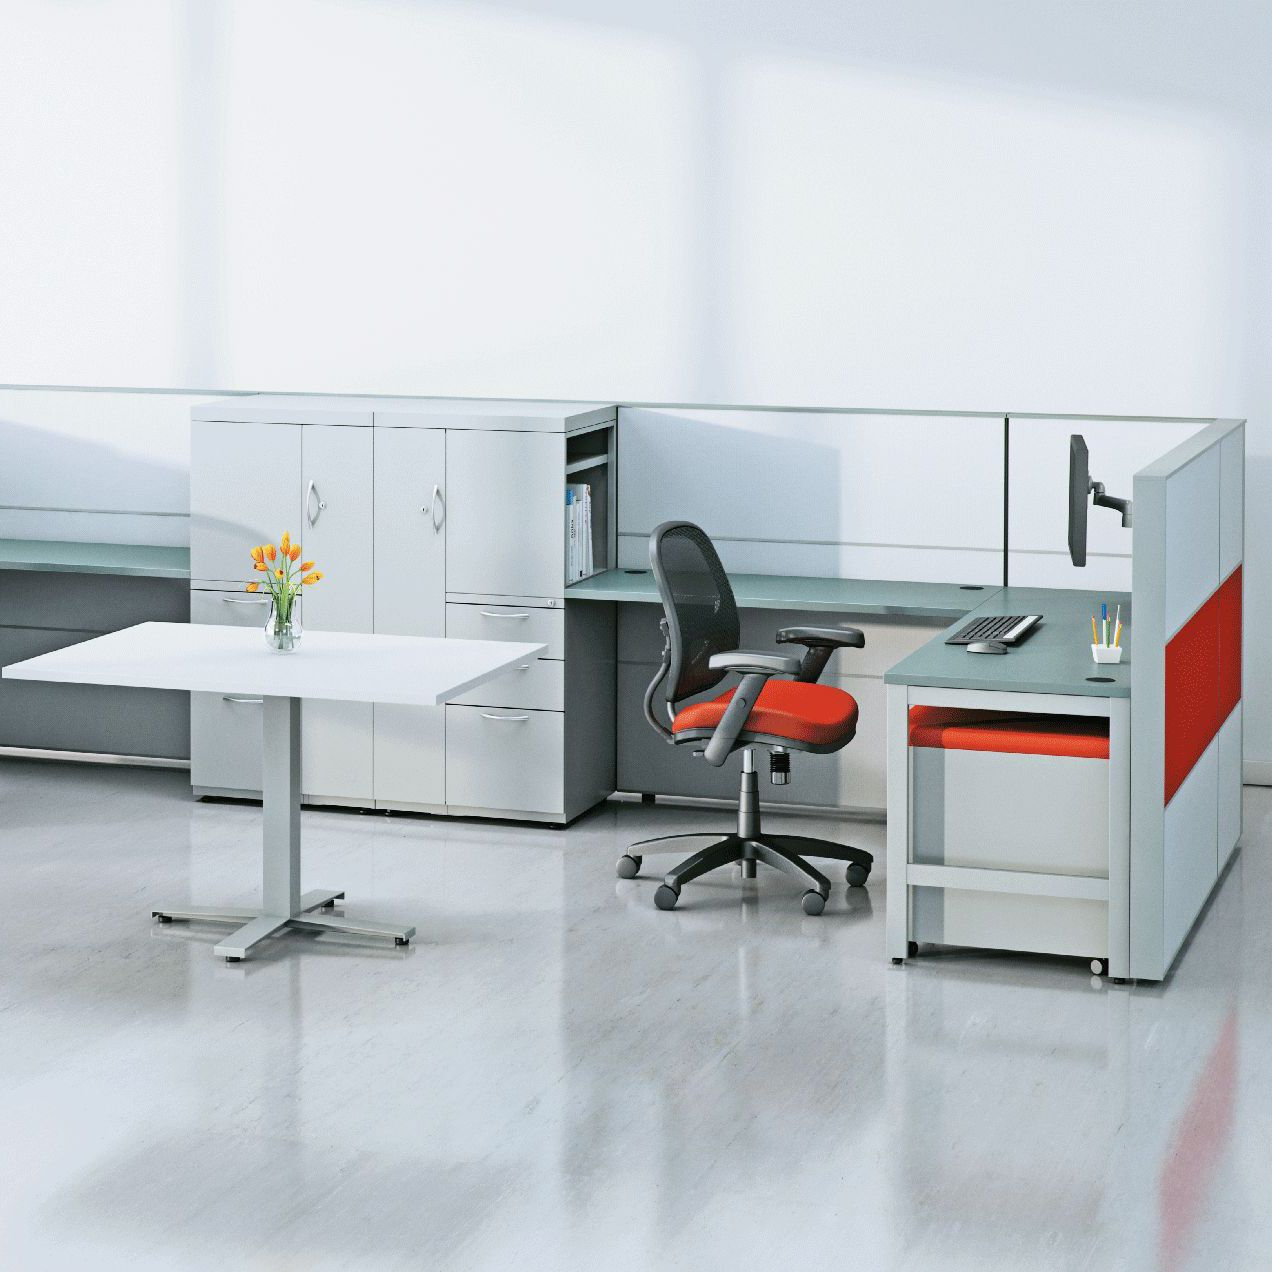 Countertop Office Divider Floor Mounted Laminate Glass